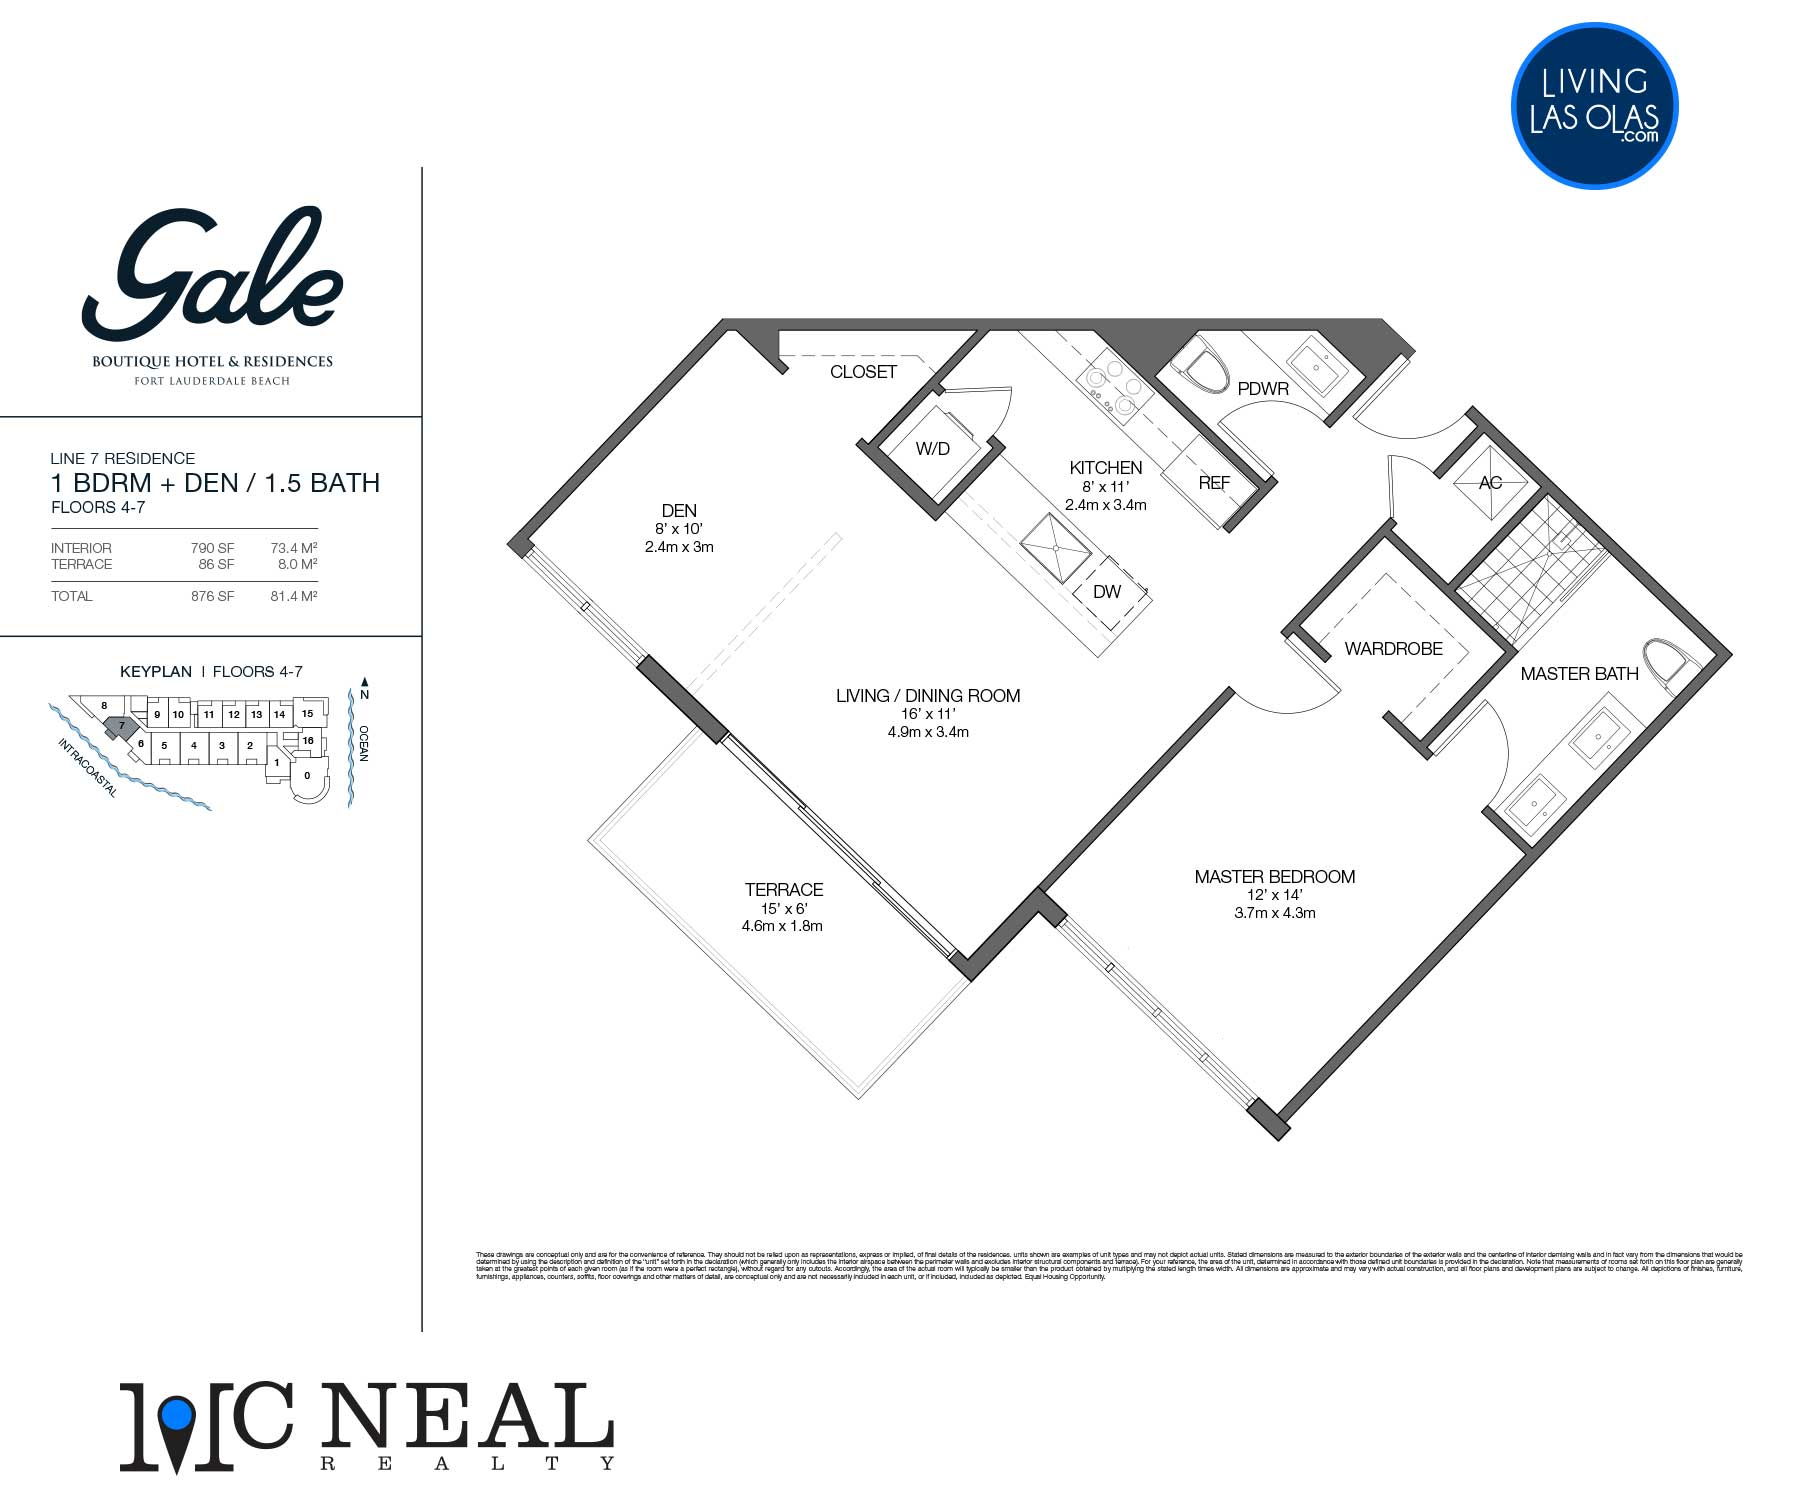 Tiffany House Condos Floor Plans Line 7